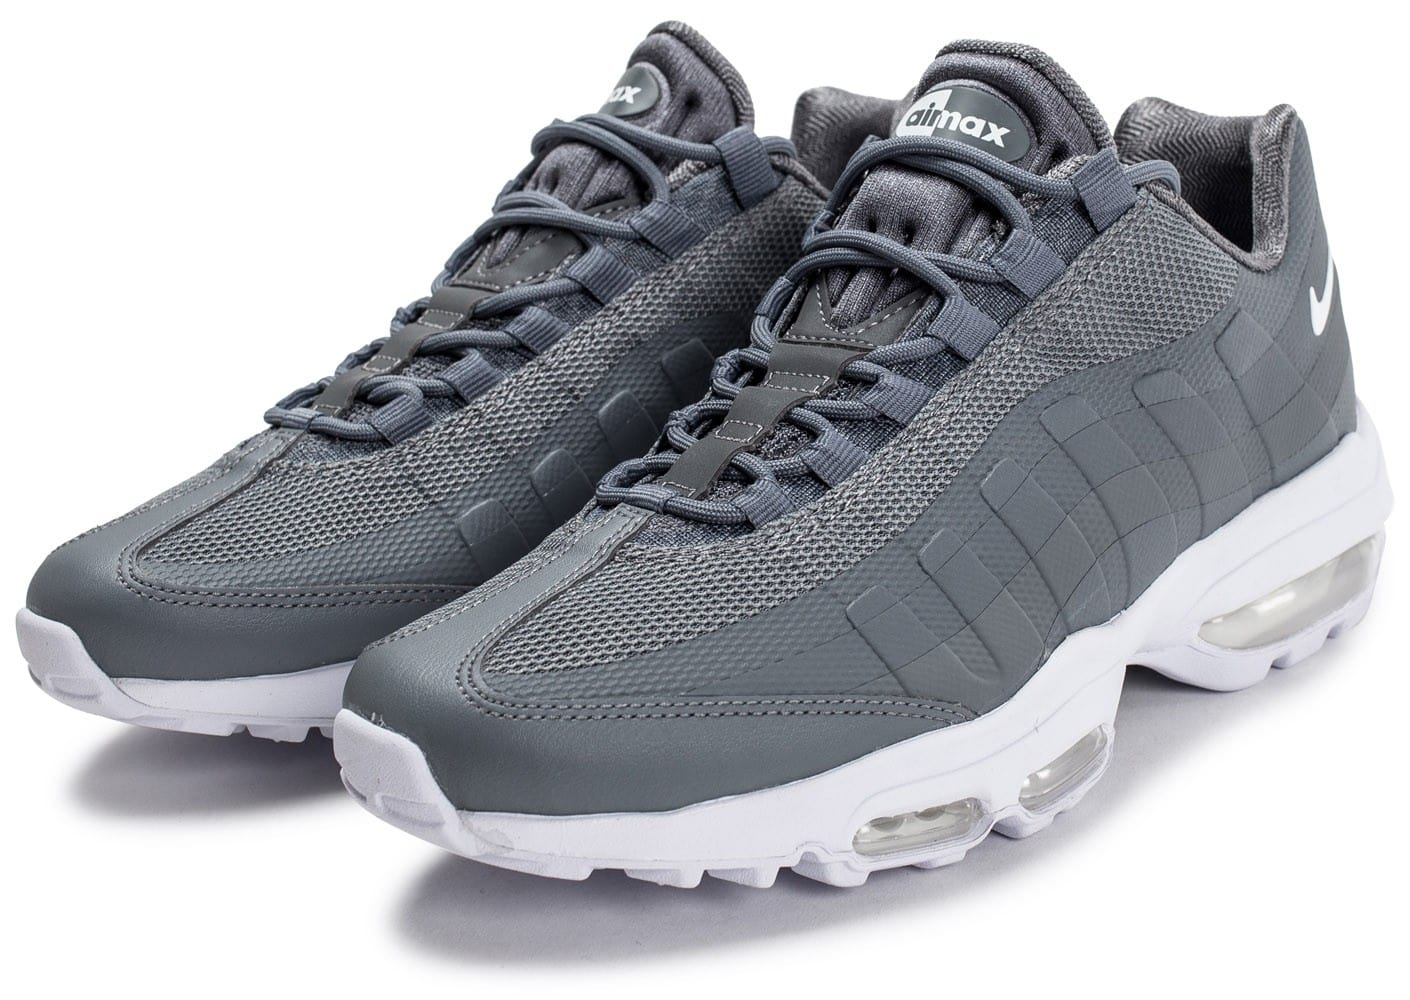 nike air max 95 ultra essential grise chaussures homme chausport. Black Bedroom Furniture Sets. Home Design Ideas